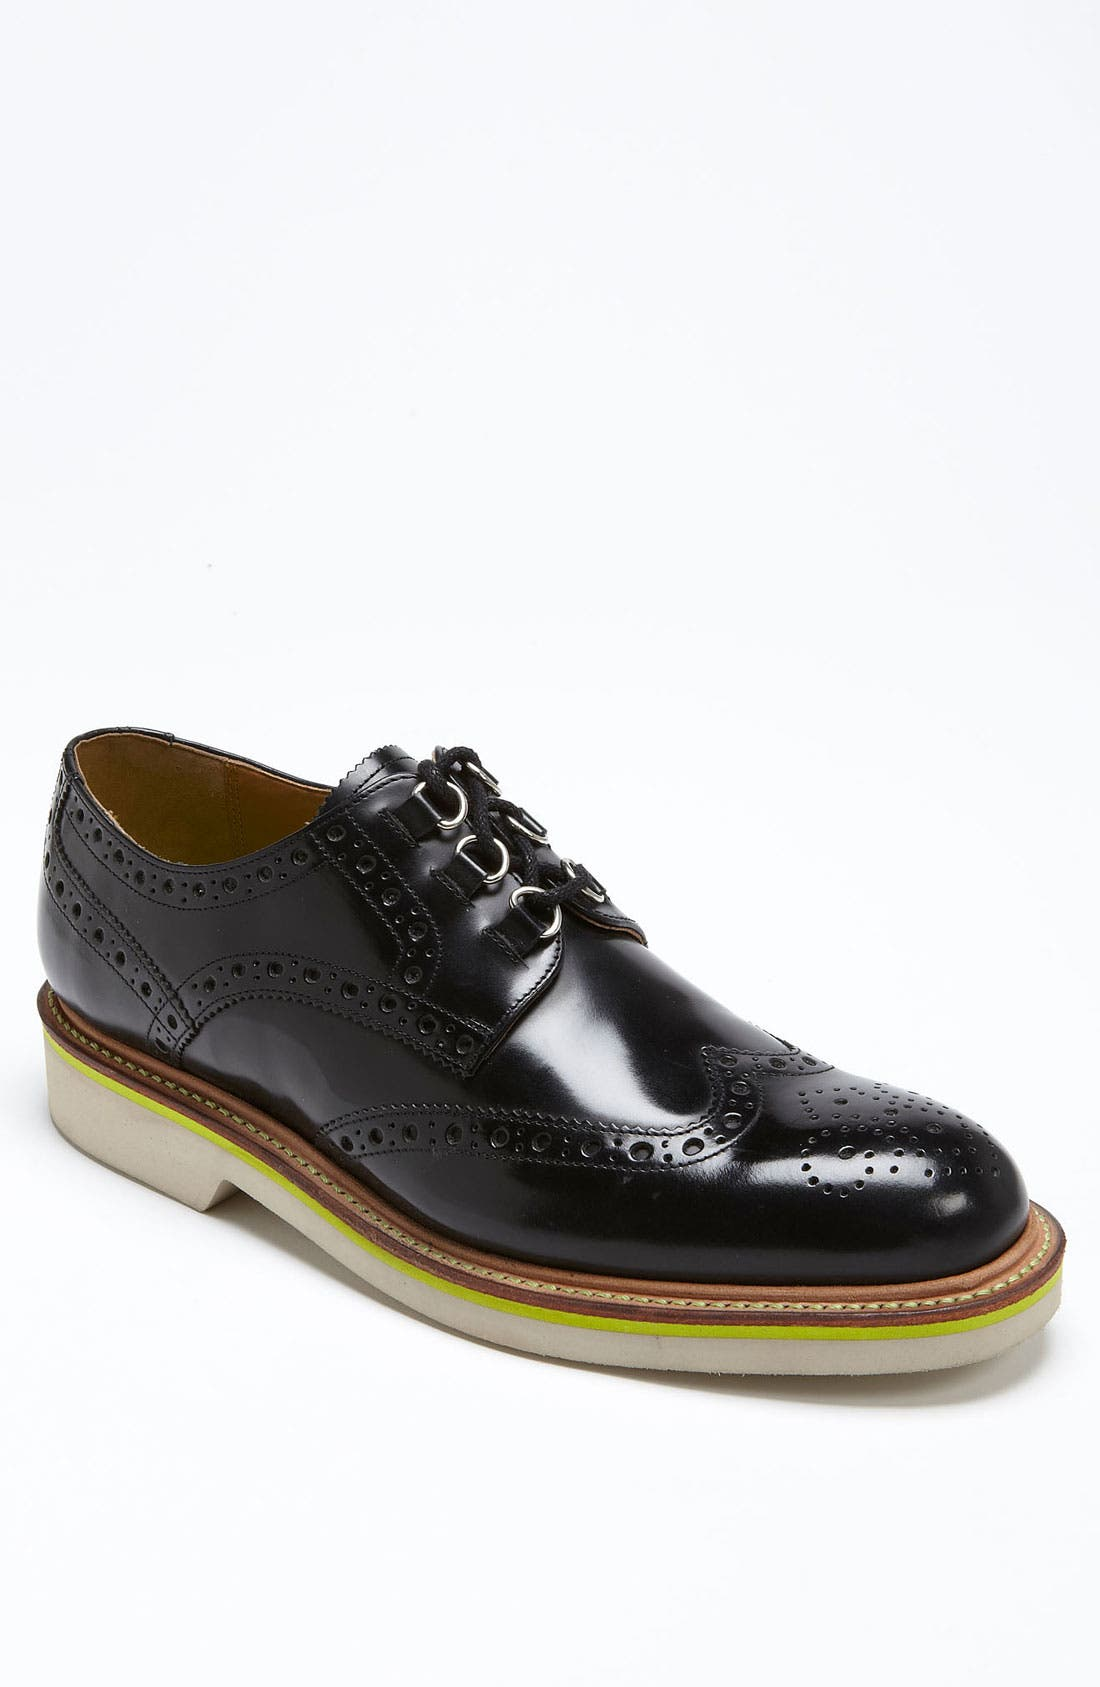 Main Image - Oliver Sweeney 'Albany' Wingtip